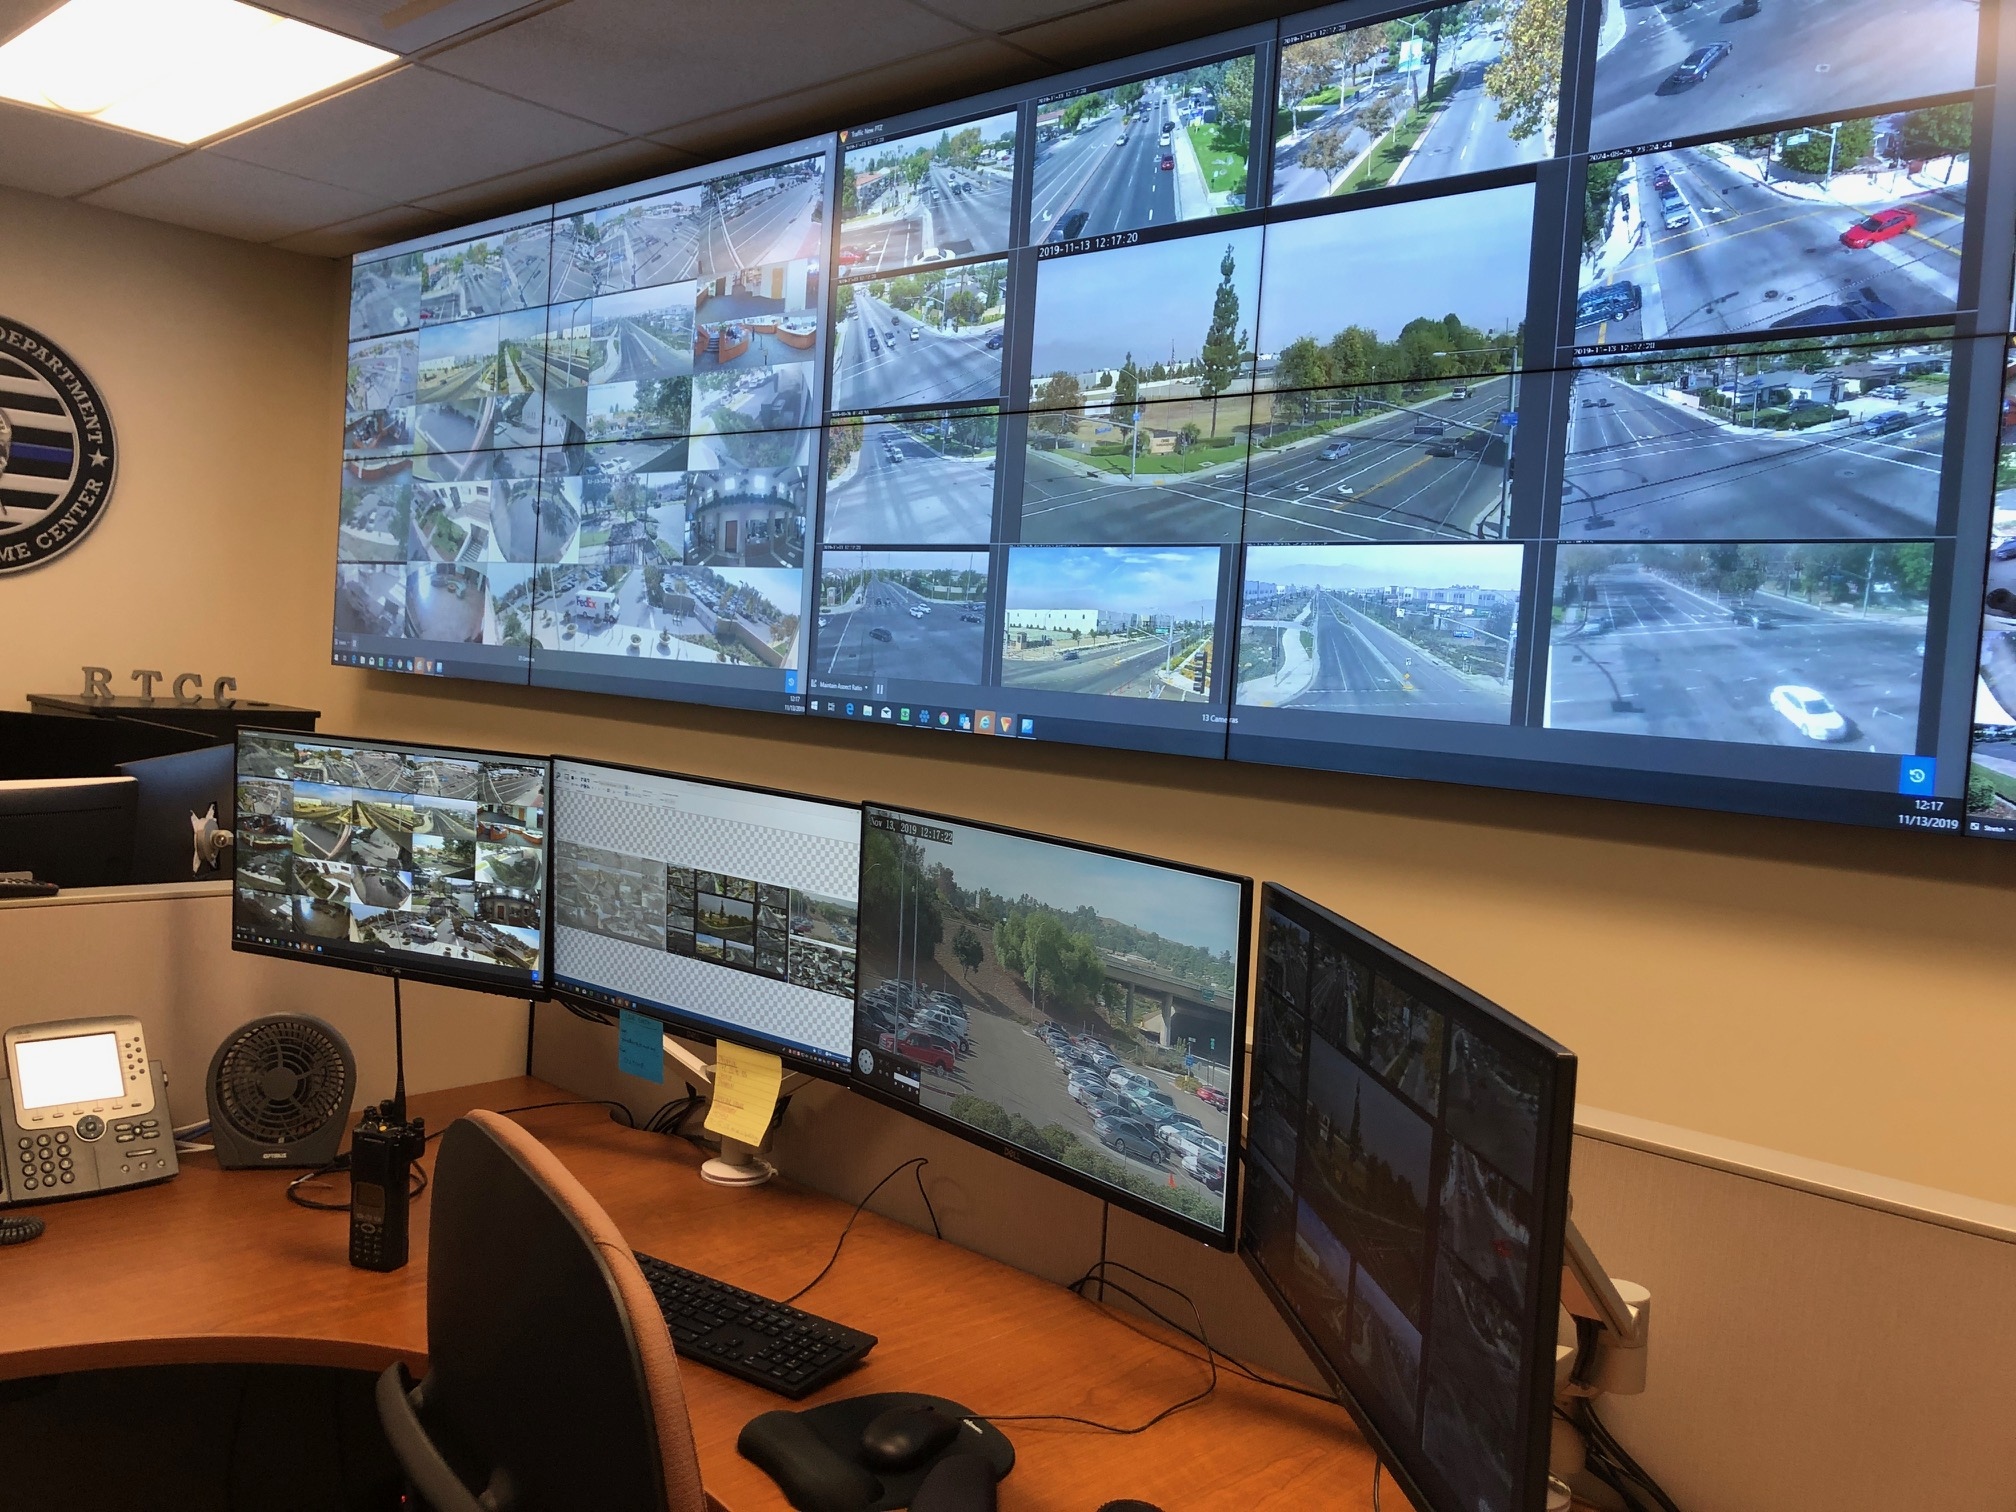 Chino Police Department Technology Experience Tour